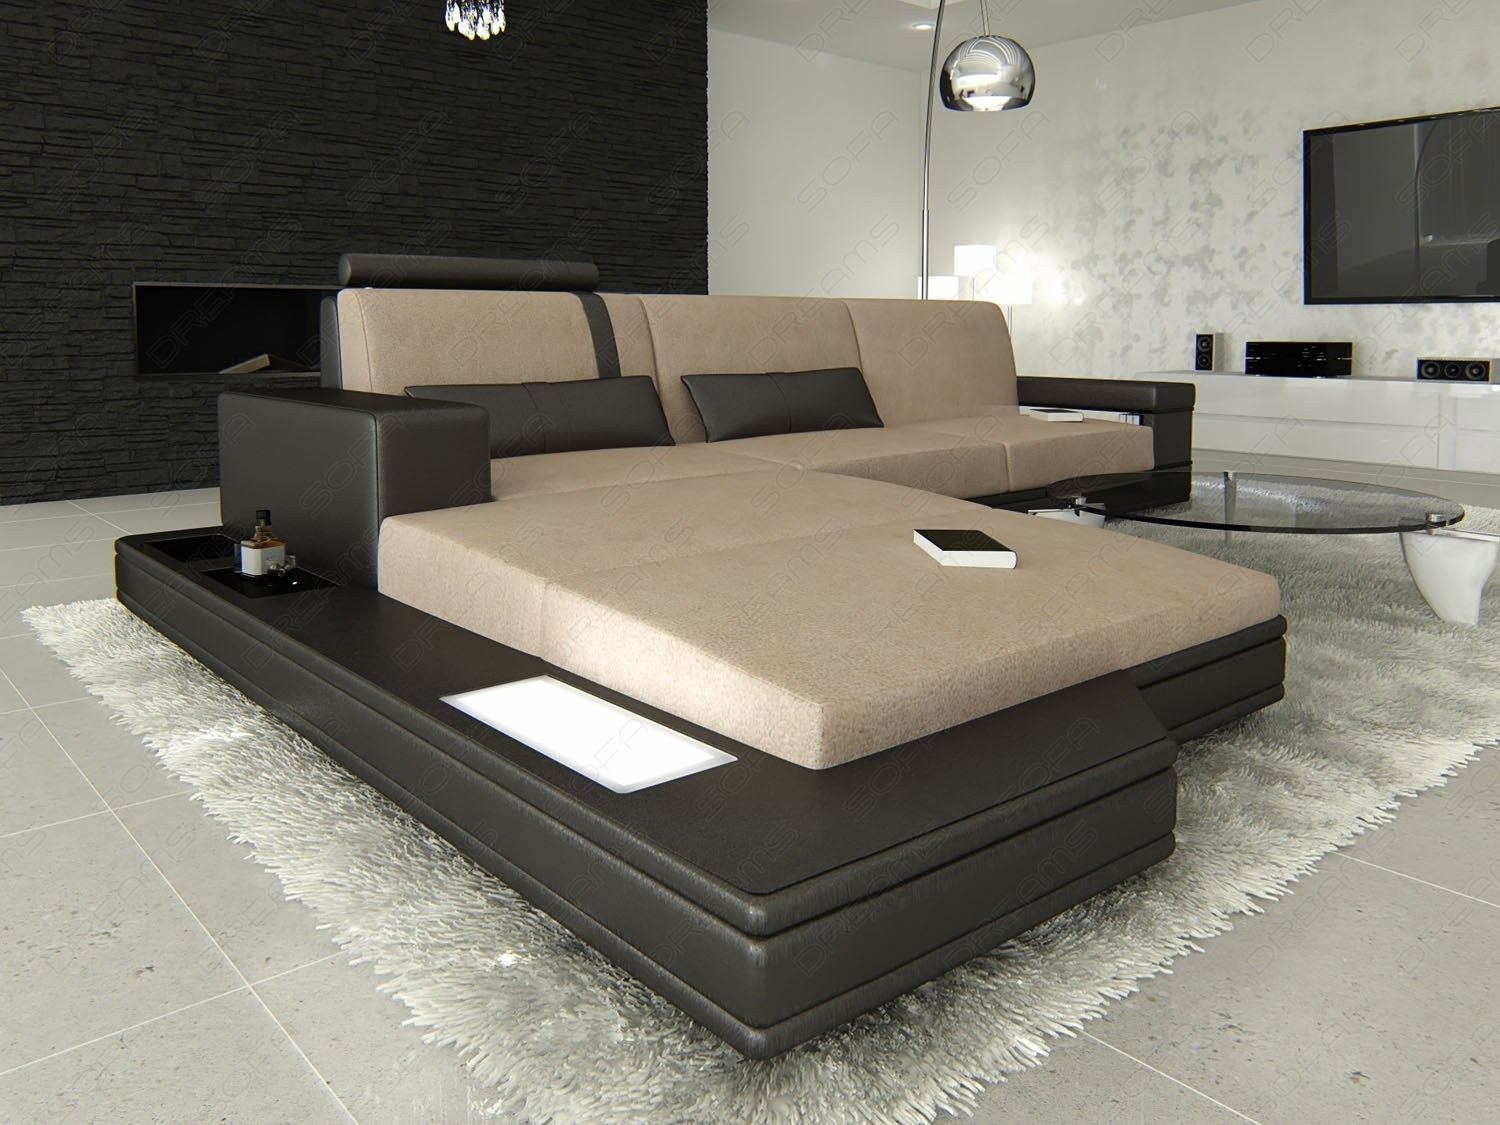 stoffsofa messana l form licht materialmix schwarz hellbraun ebay. Black Bedroom Furniture Sets. Home Design Ideas